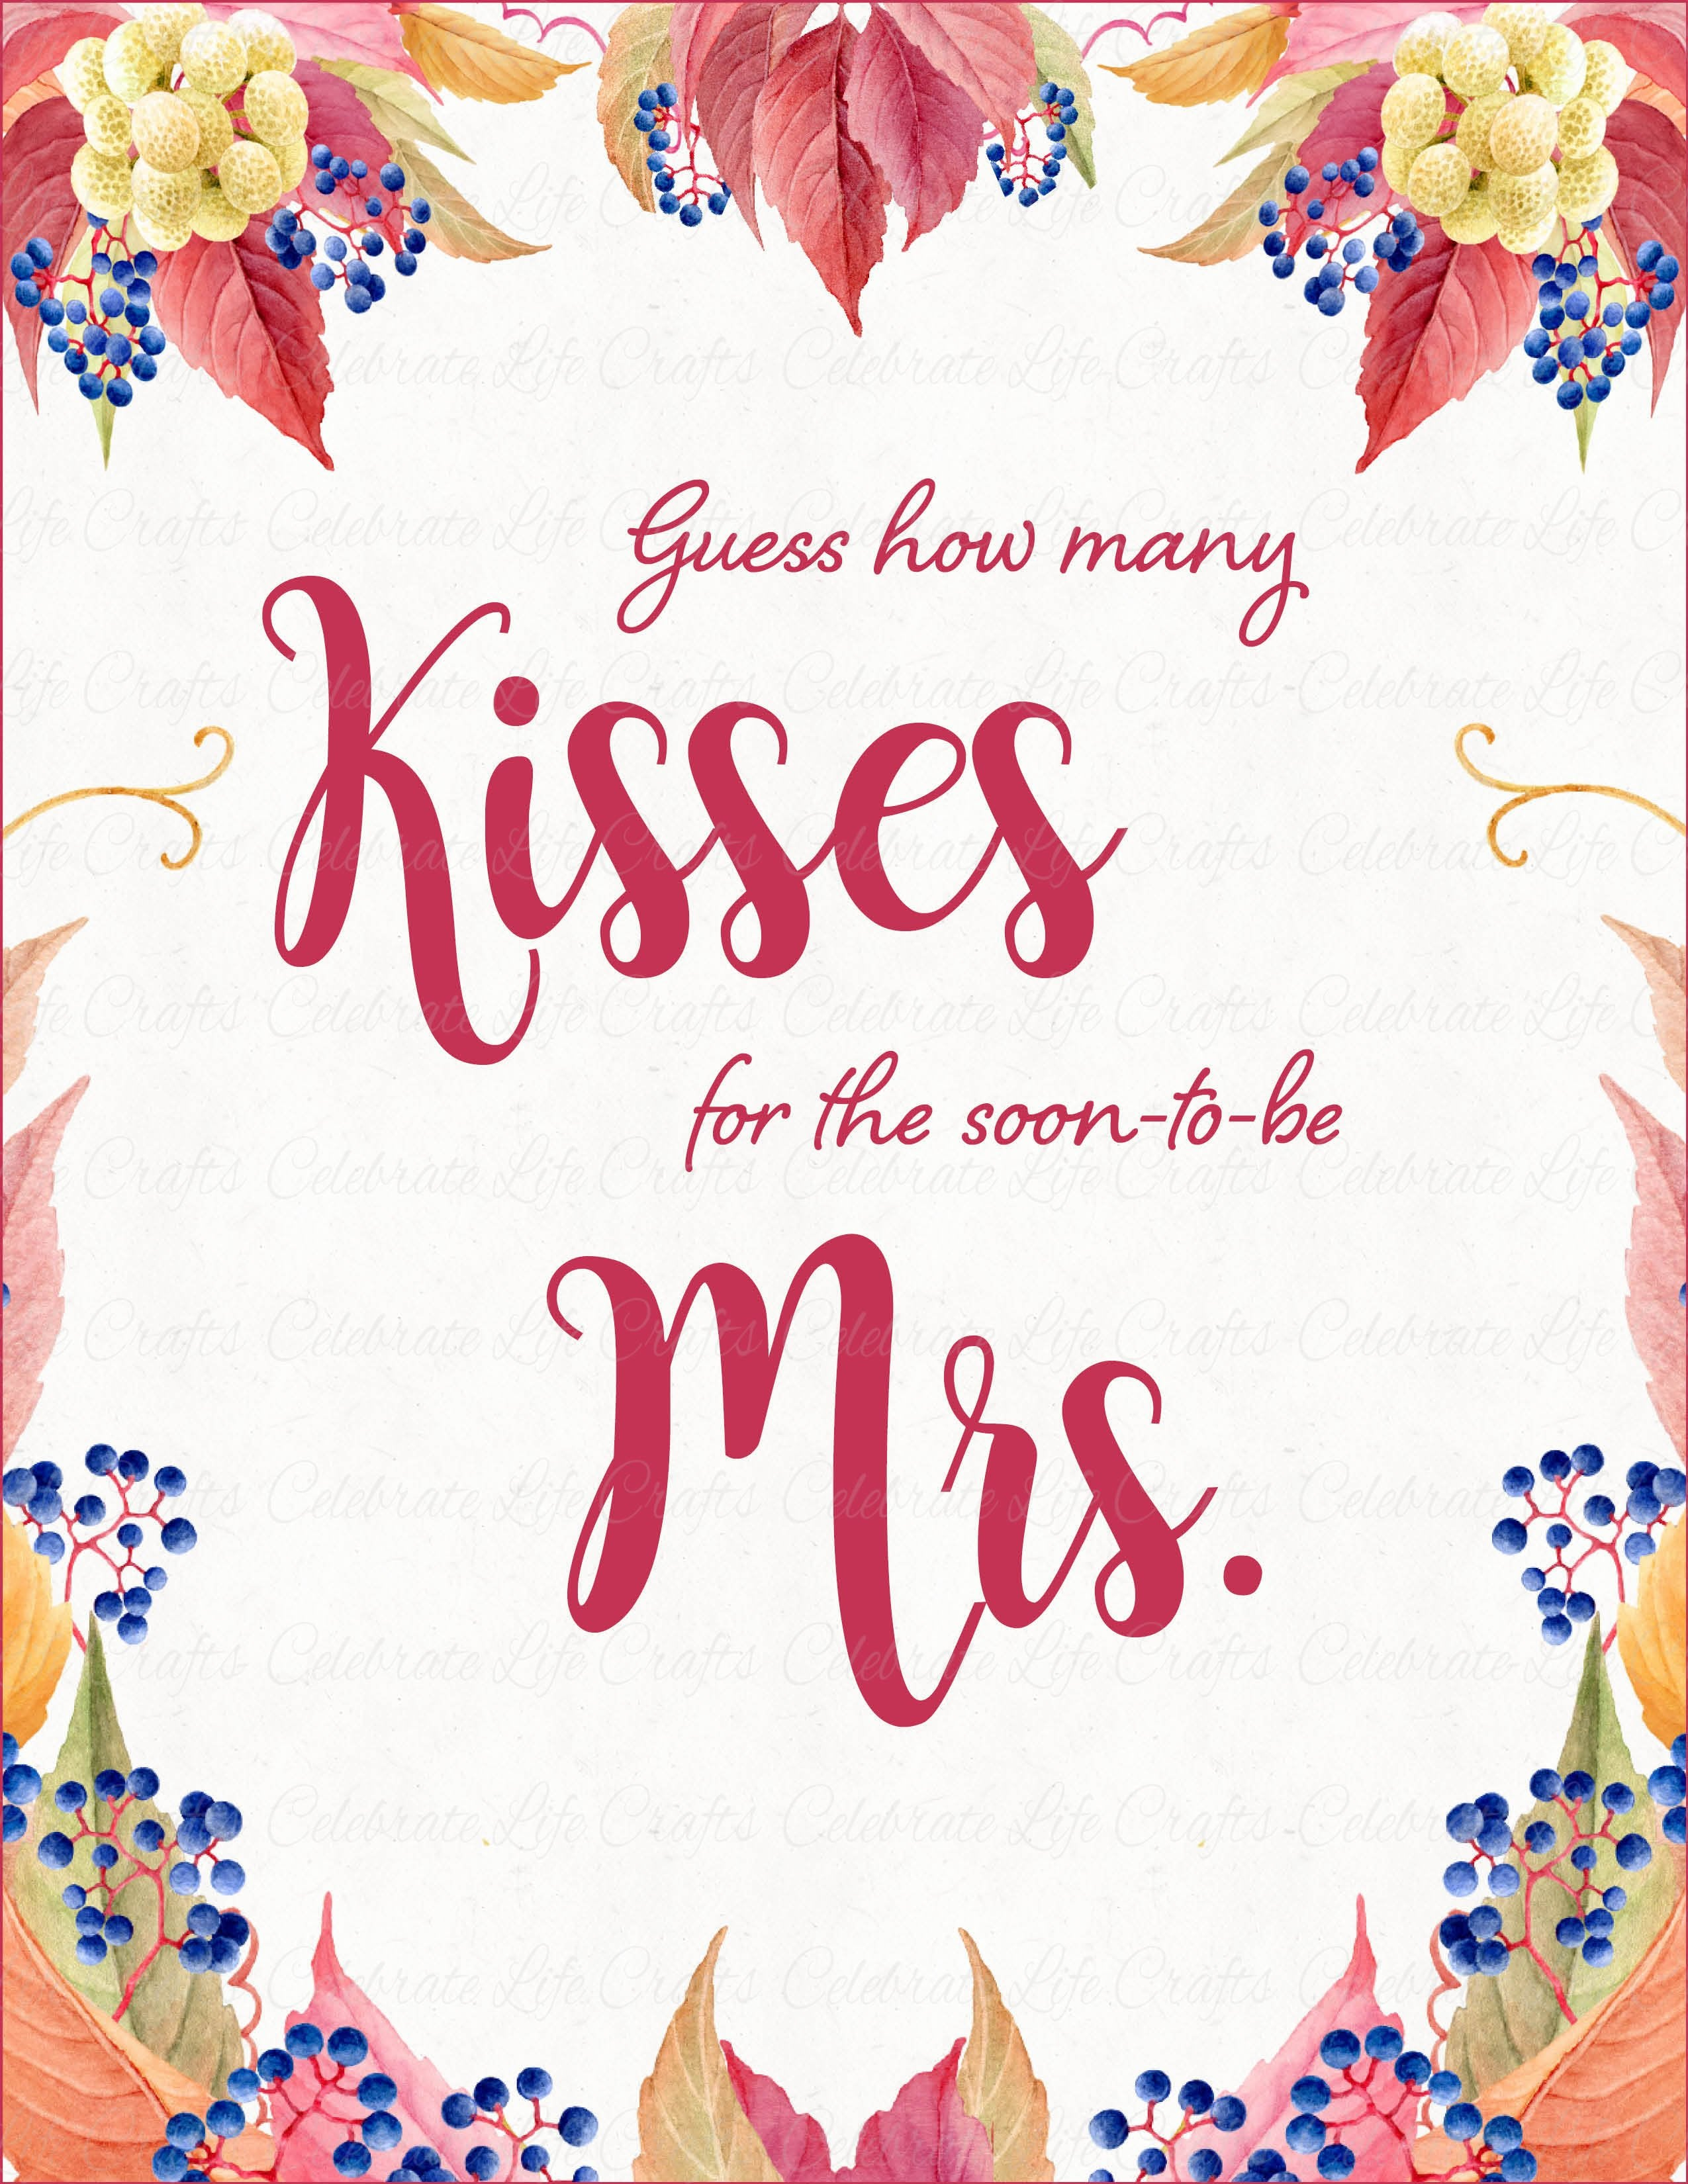 picture relating to Guess Who Cards Printable identified as How Quite a few Kisses Drop Bridal Shower Sport Indicator - Slipping within